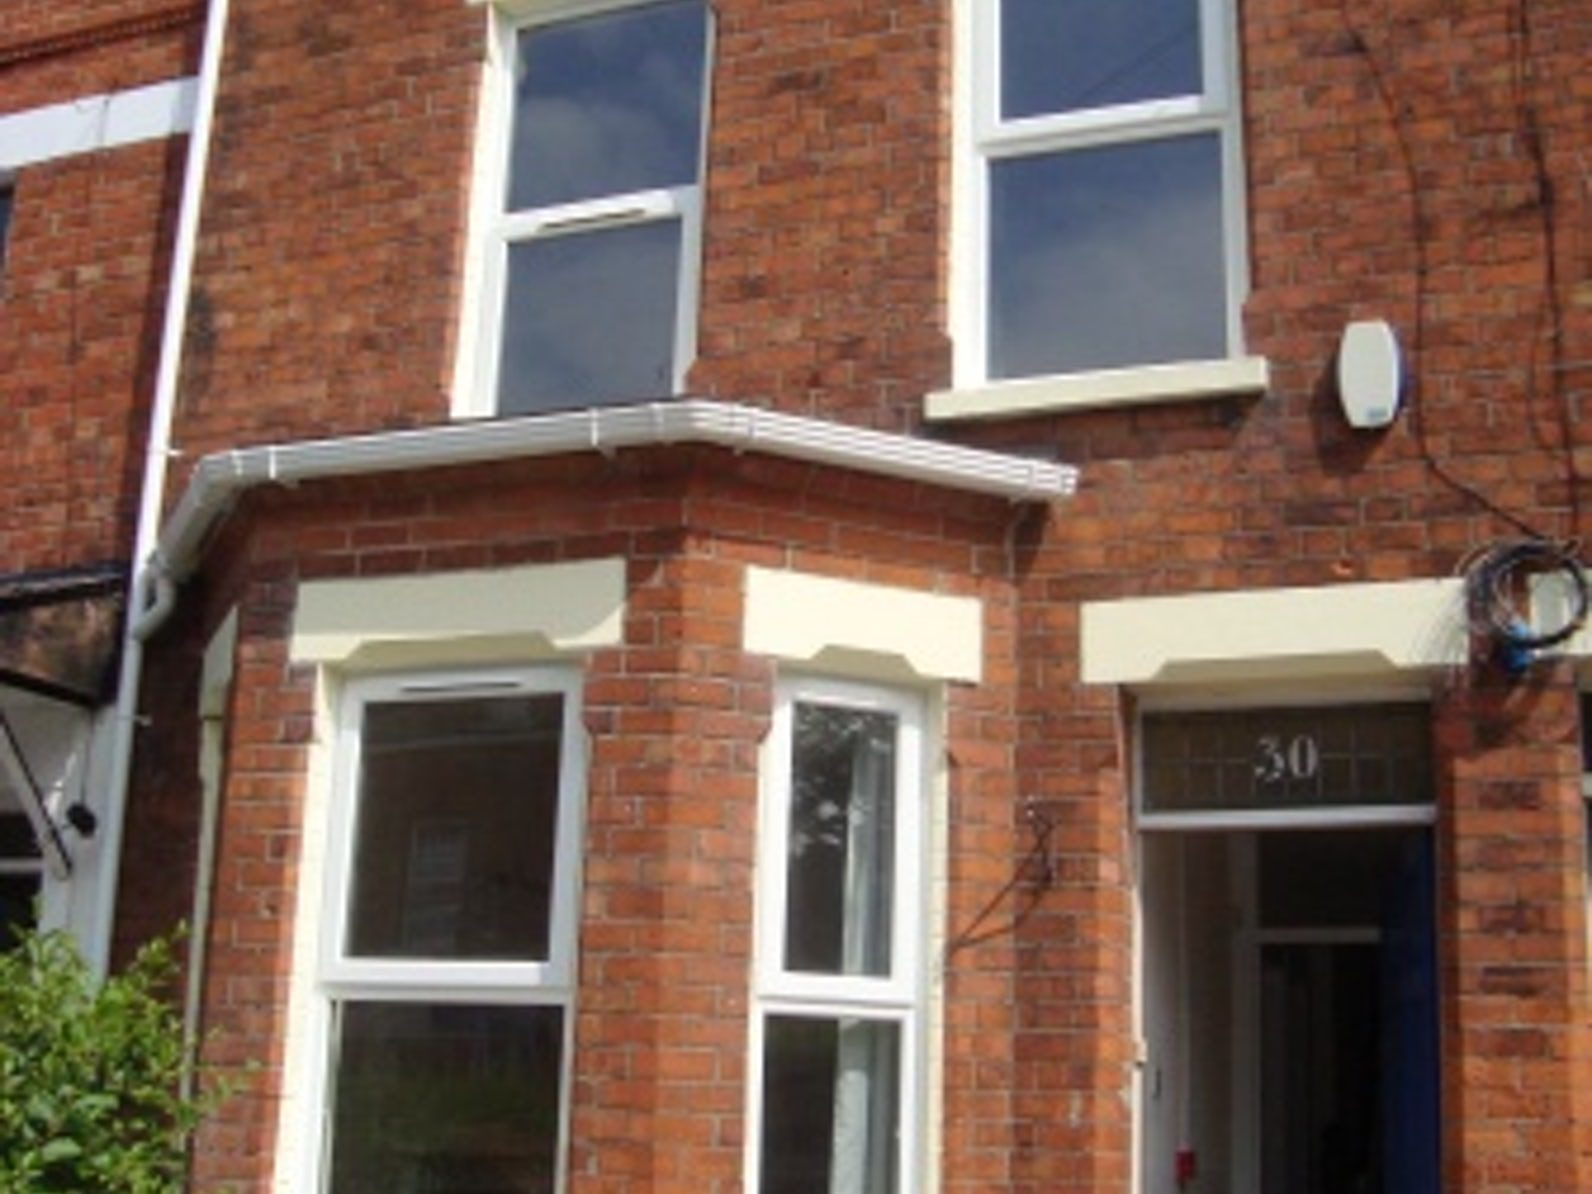 4 Bedroom HMO Property For Rent